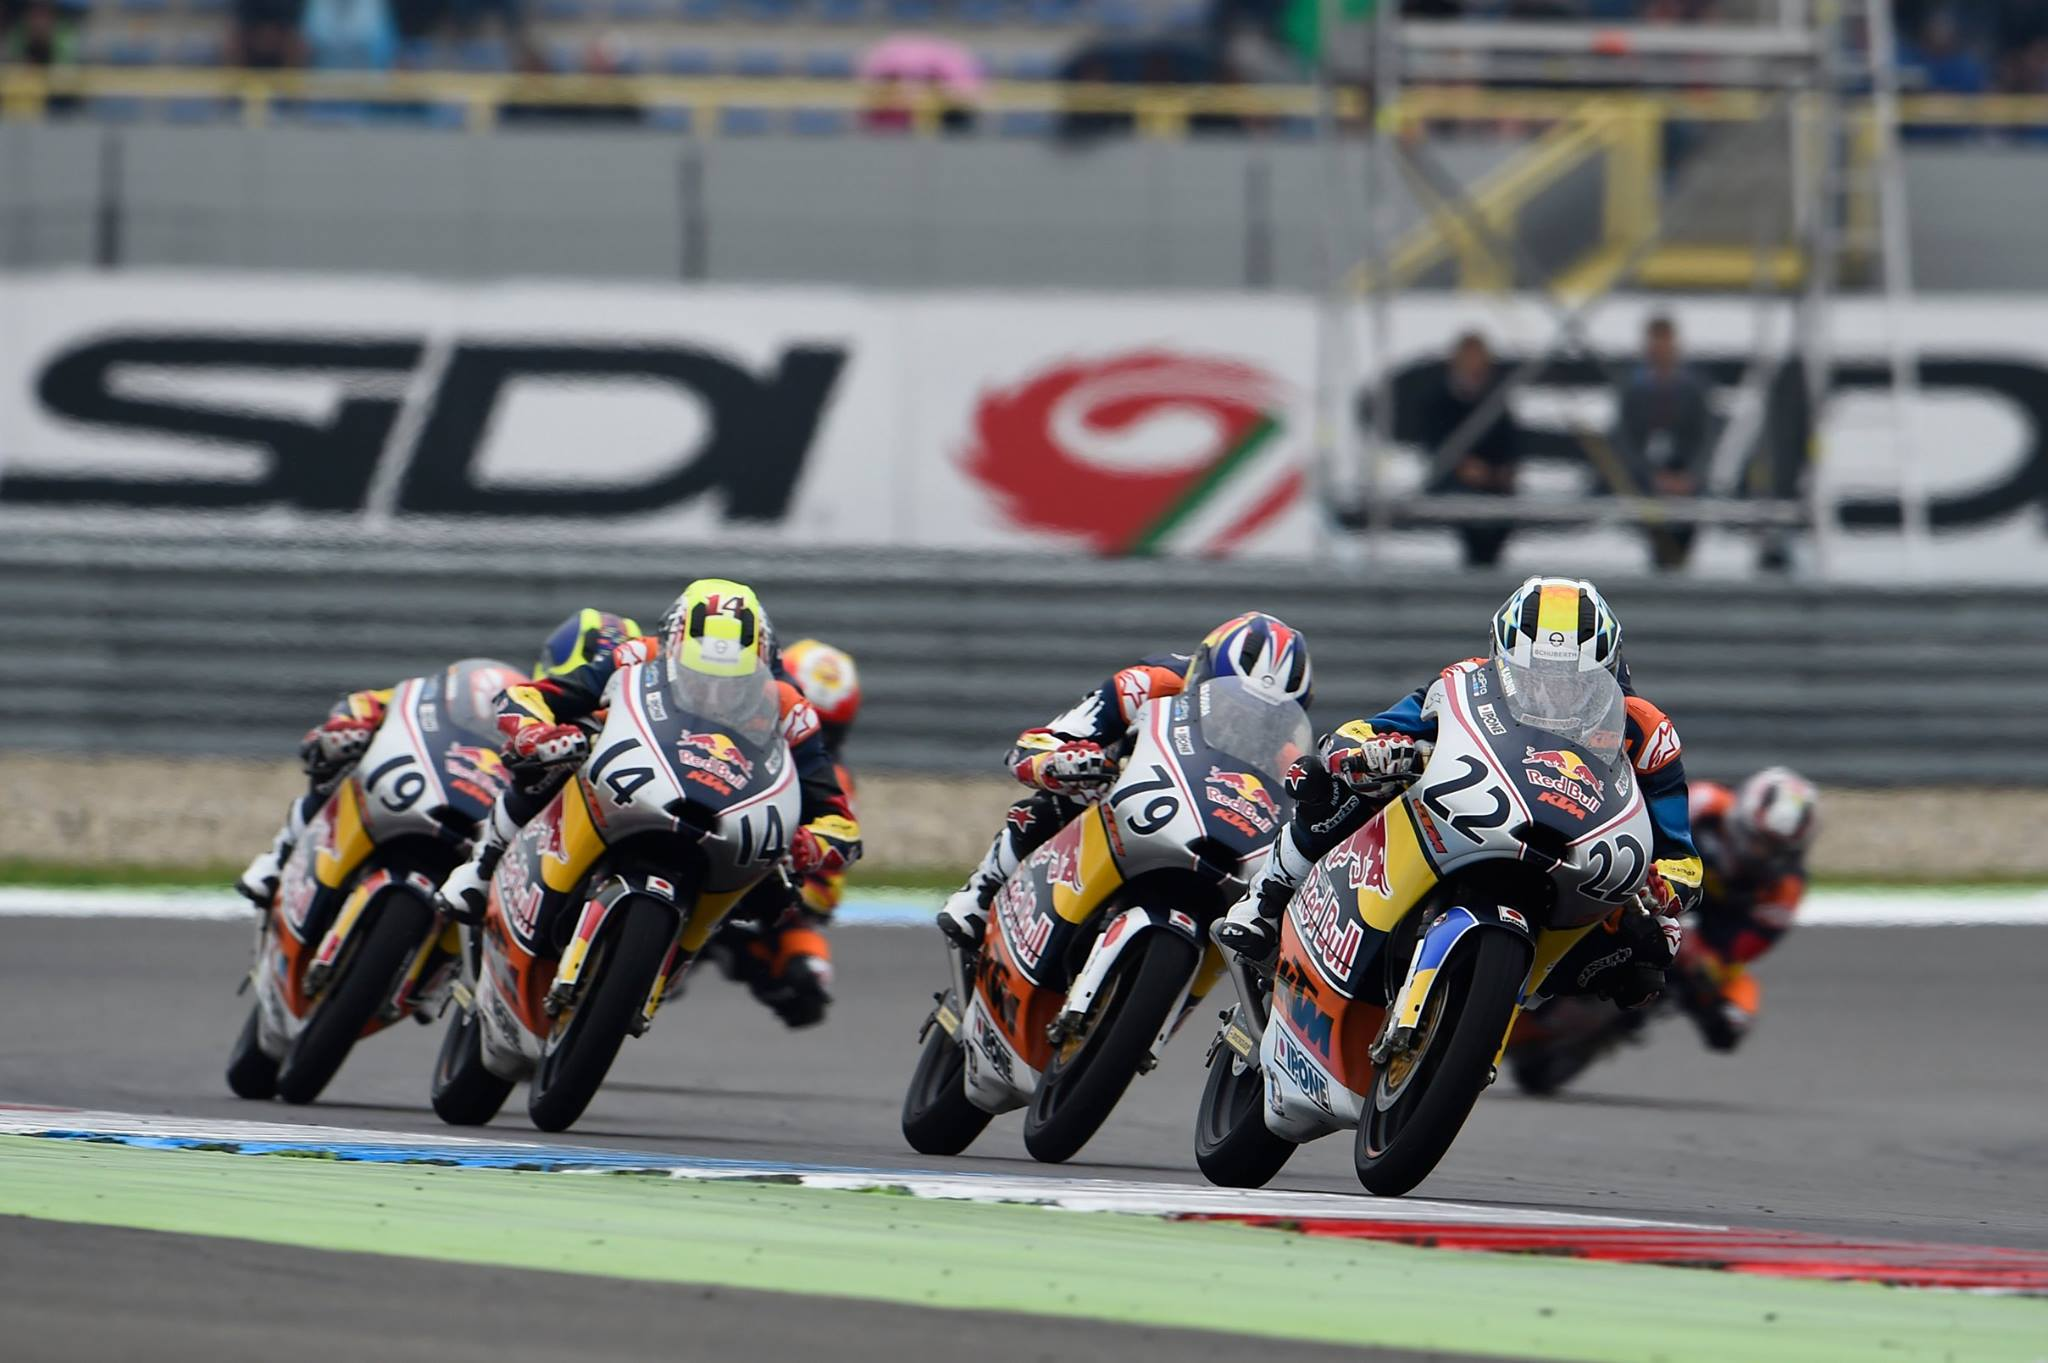 KALININ FINISHED 8TH IN THE RACE OF JUNIOR MOTOGP IN ASSEN